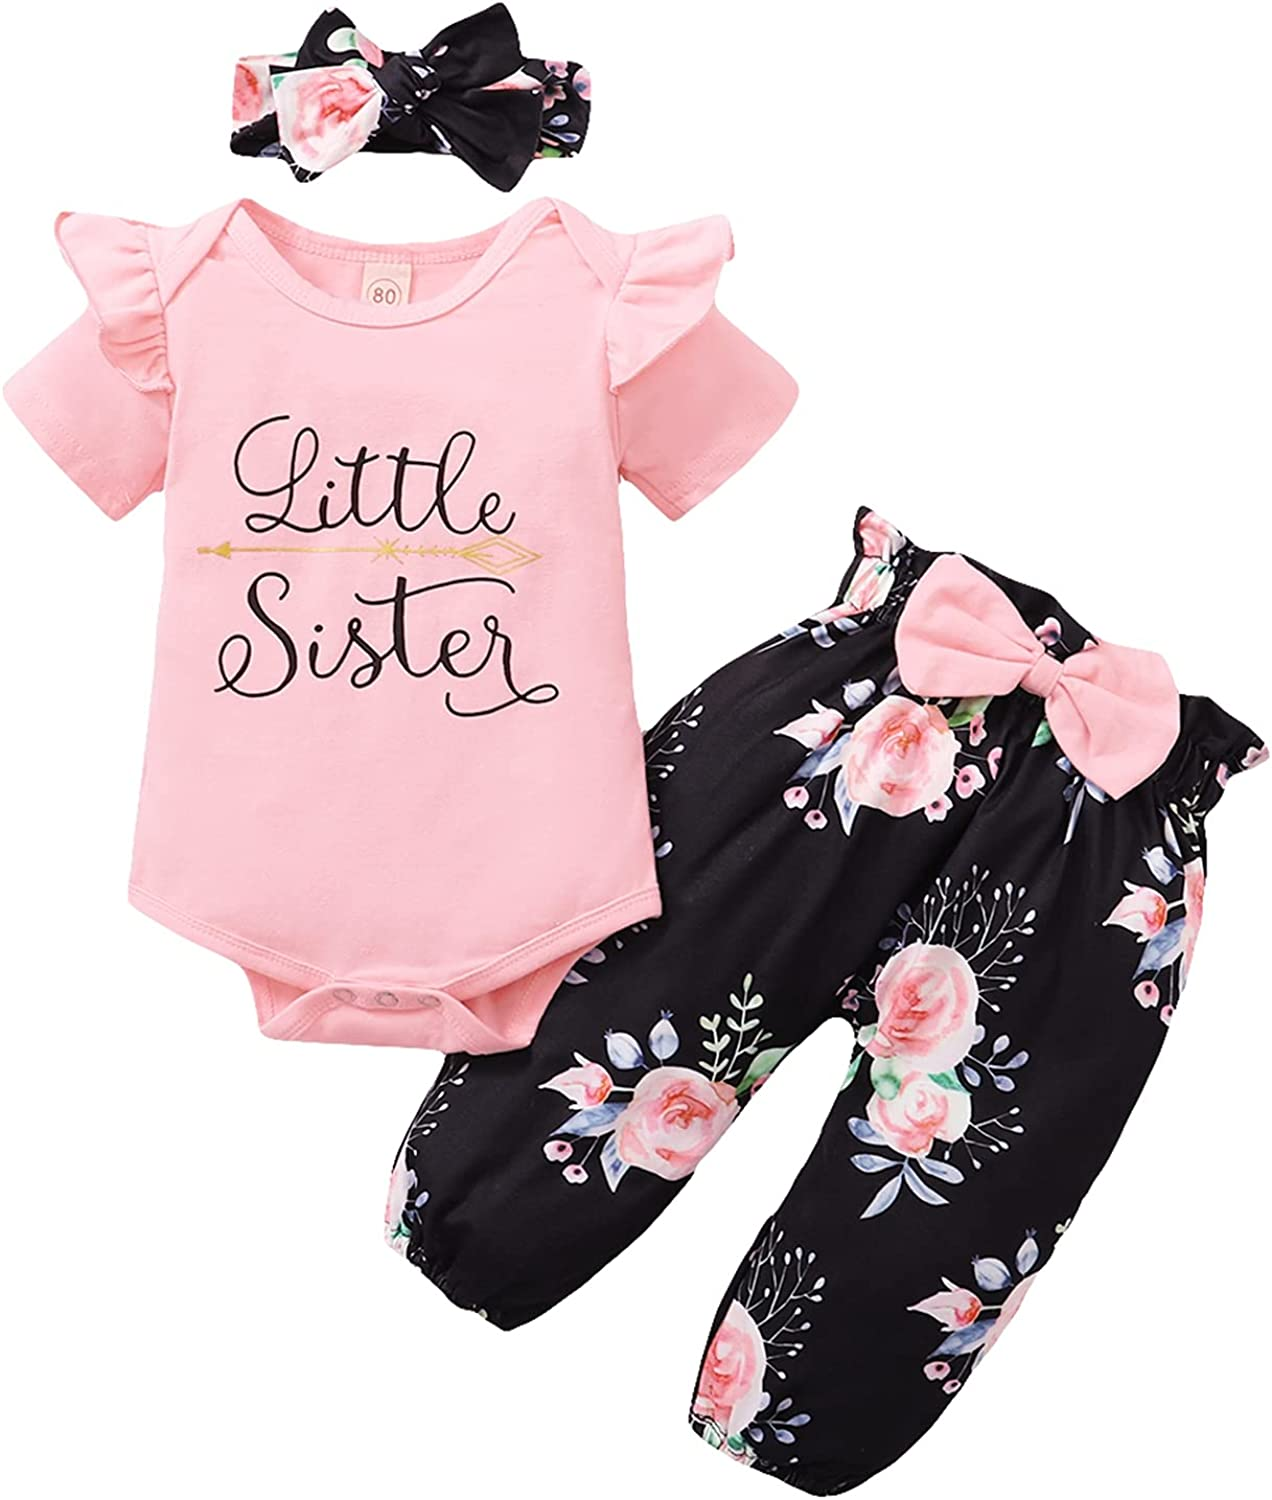 Newborn Baby Girls Clothes Ruffle Short Sleeve Letter Romper Onesie + Floral Short Pant 3pcs Baby Clothes Girl